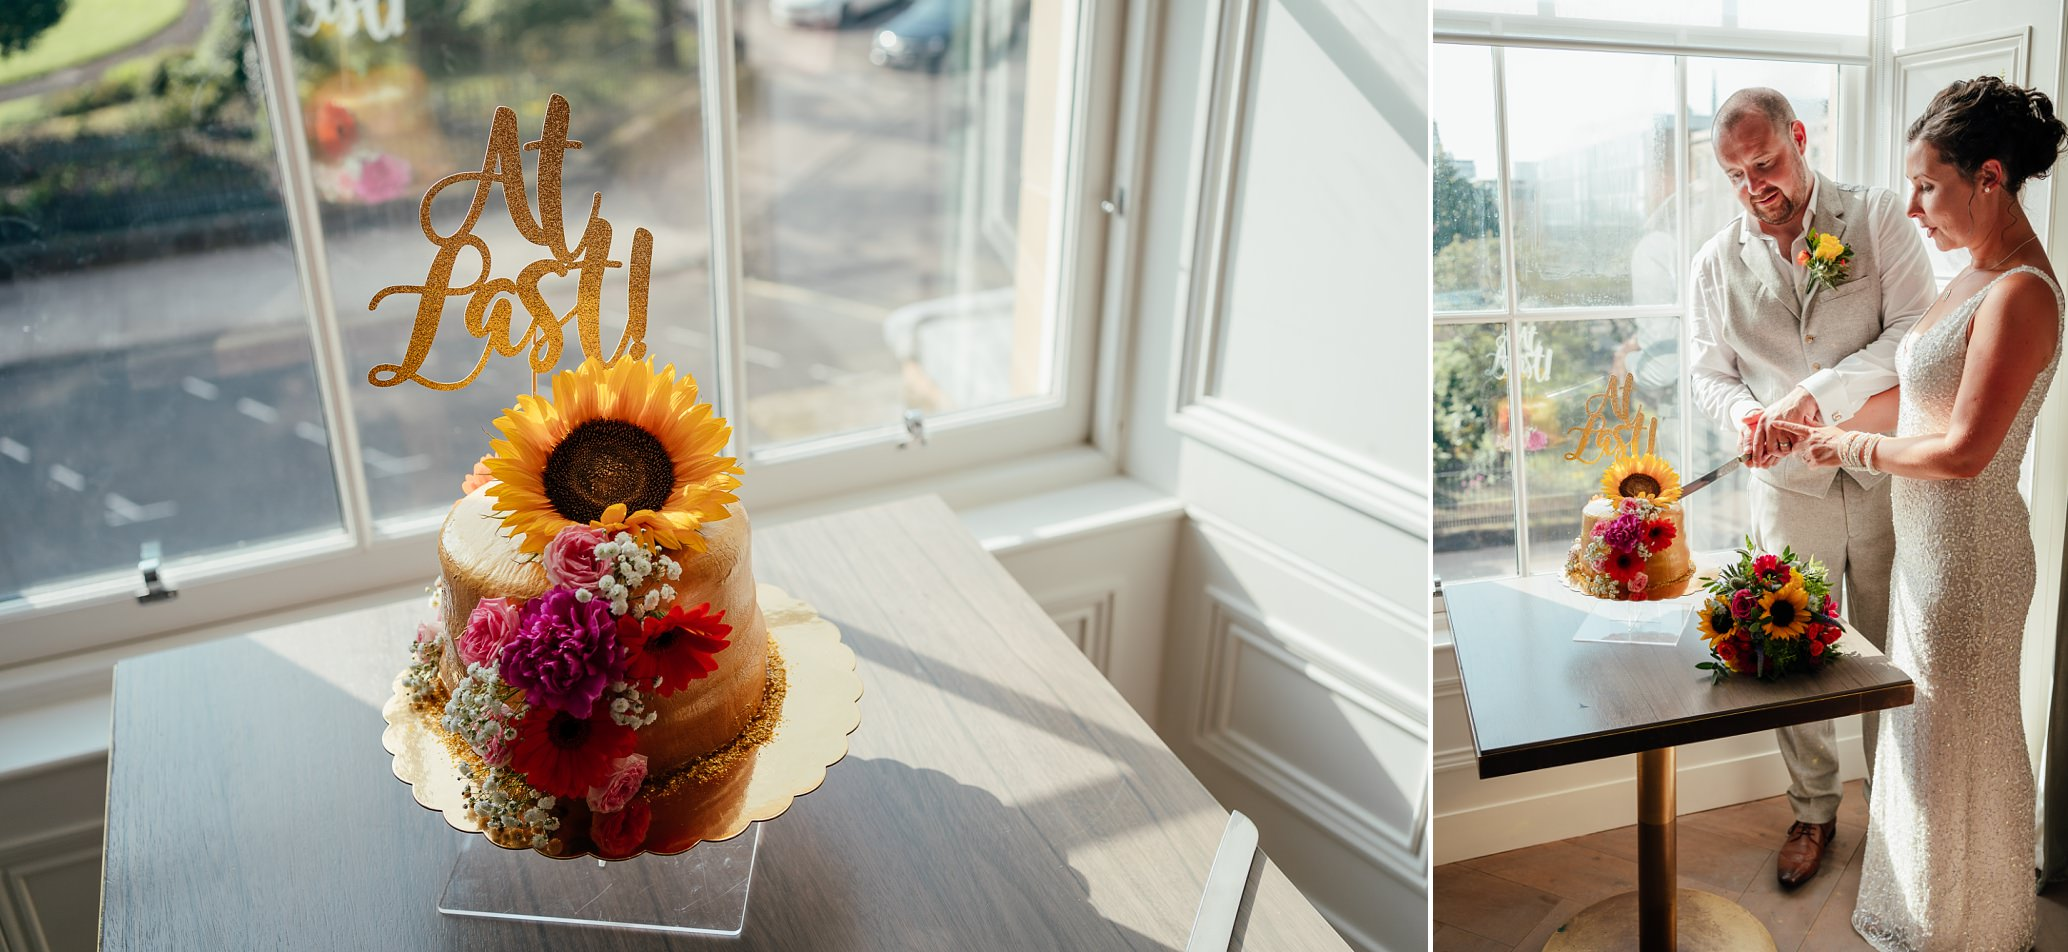 blythswood square glasgow private gardens wedding ceremony bride groom cutting cake in private suite at blythswood hotel